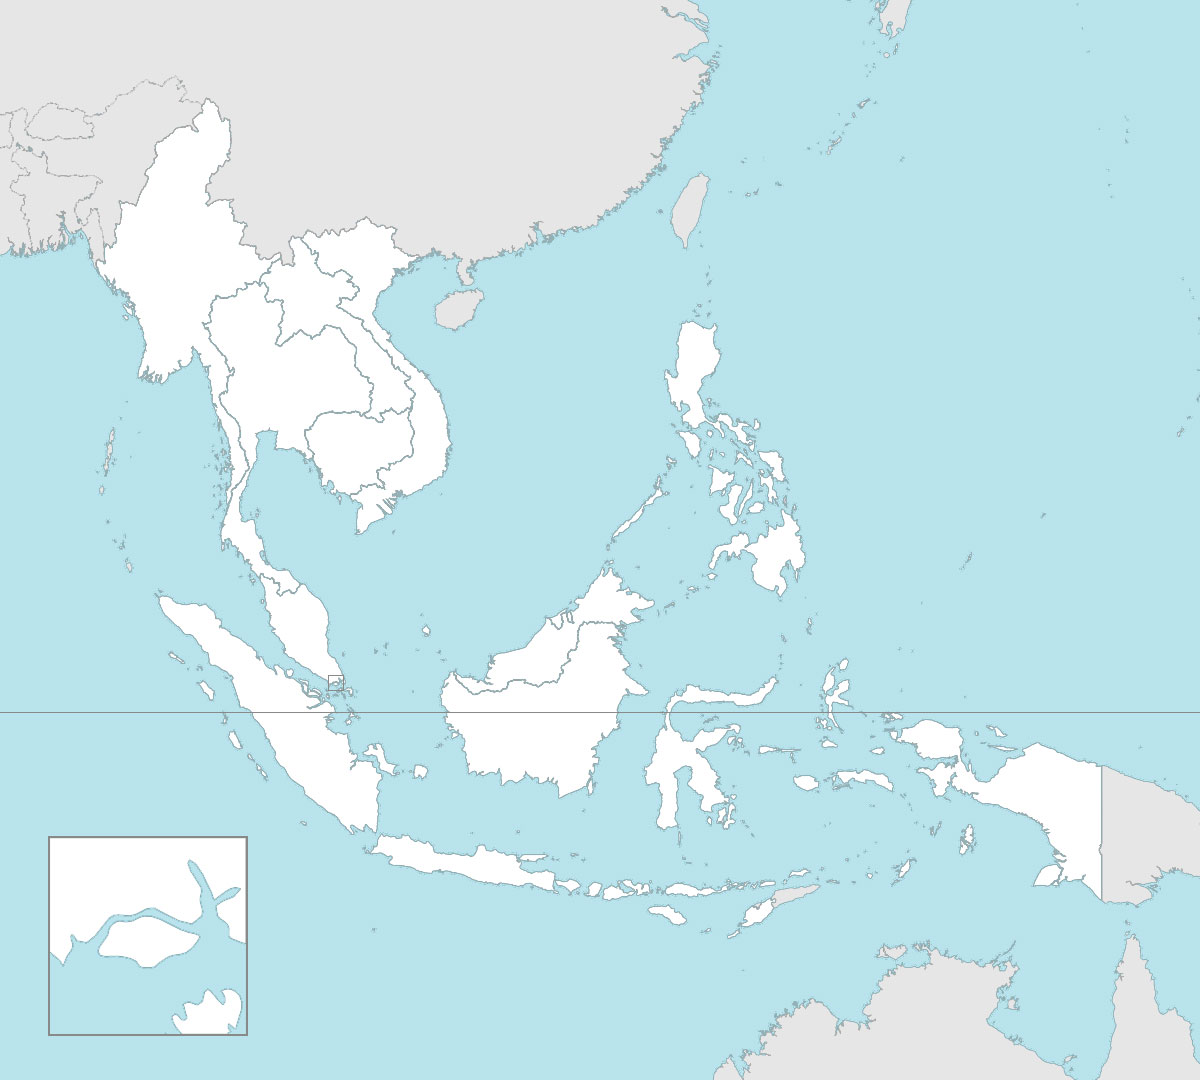 Blank map of ASEAN with countries borders